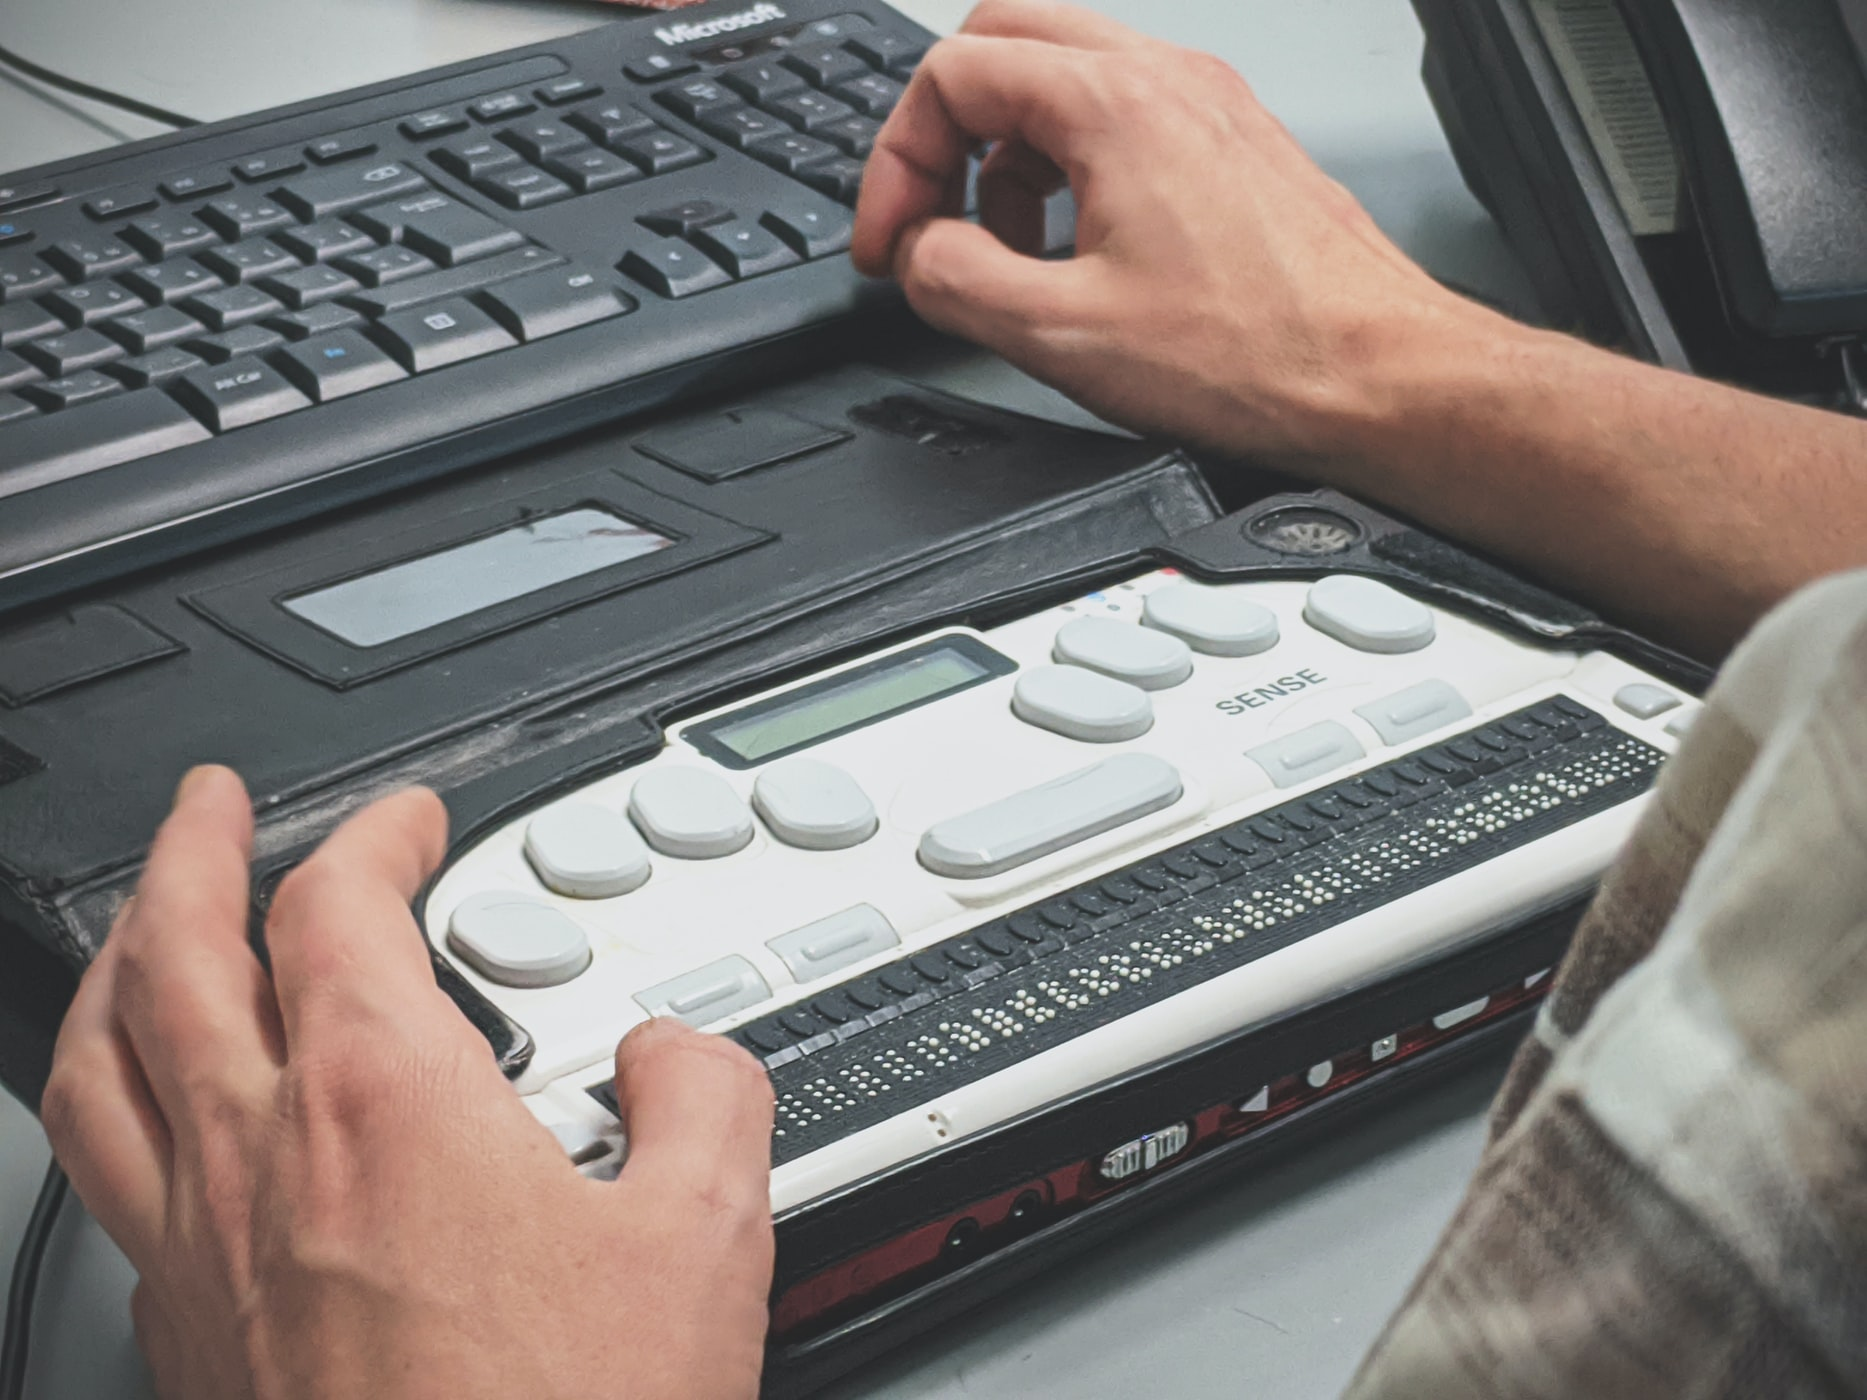 Person using using a braille screen reader.